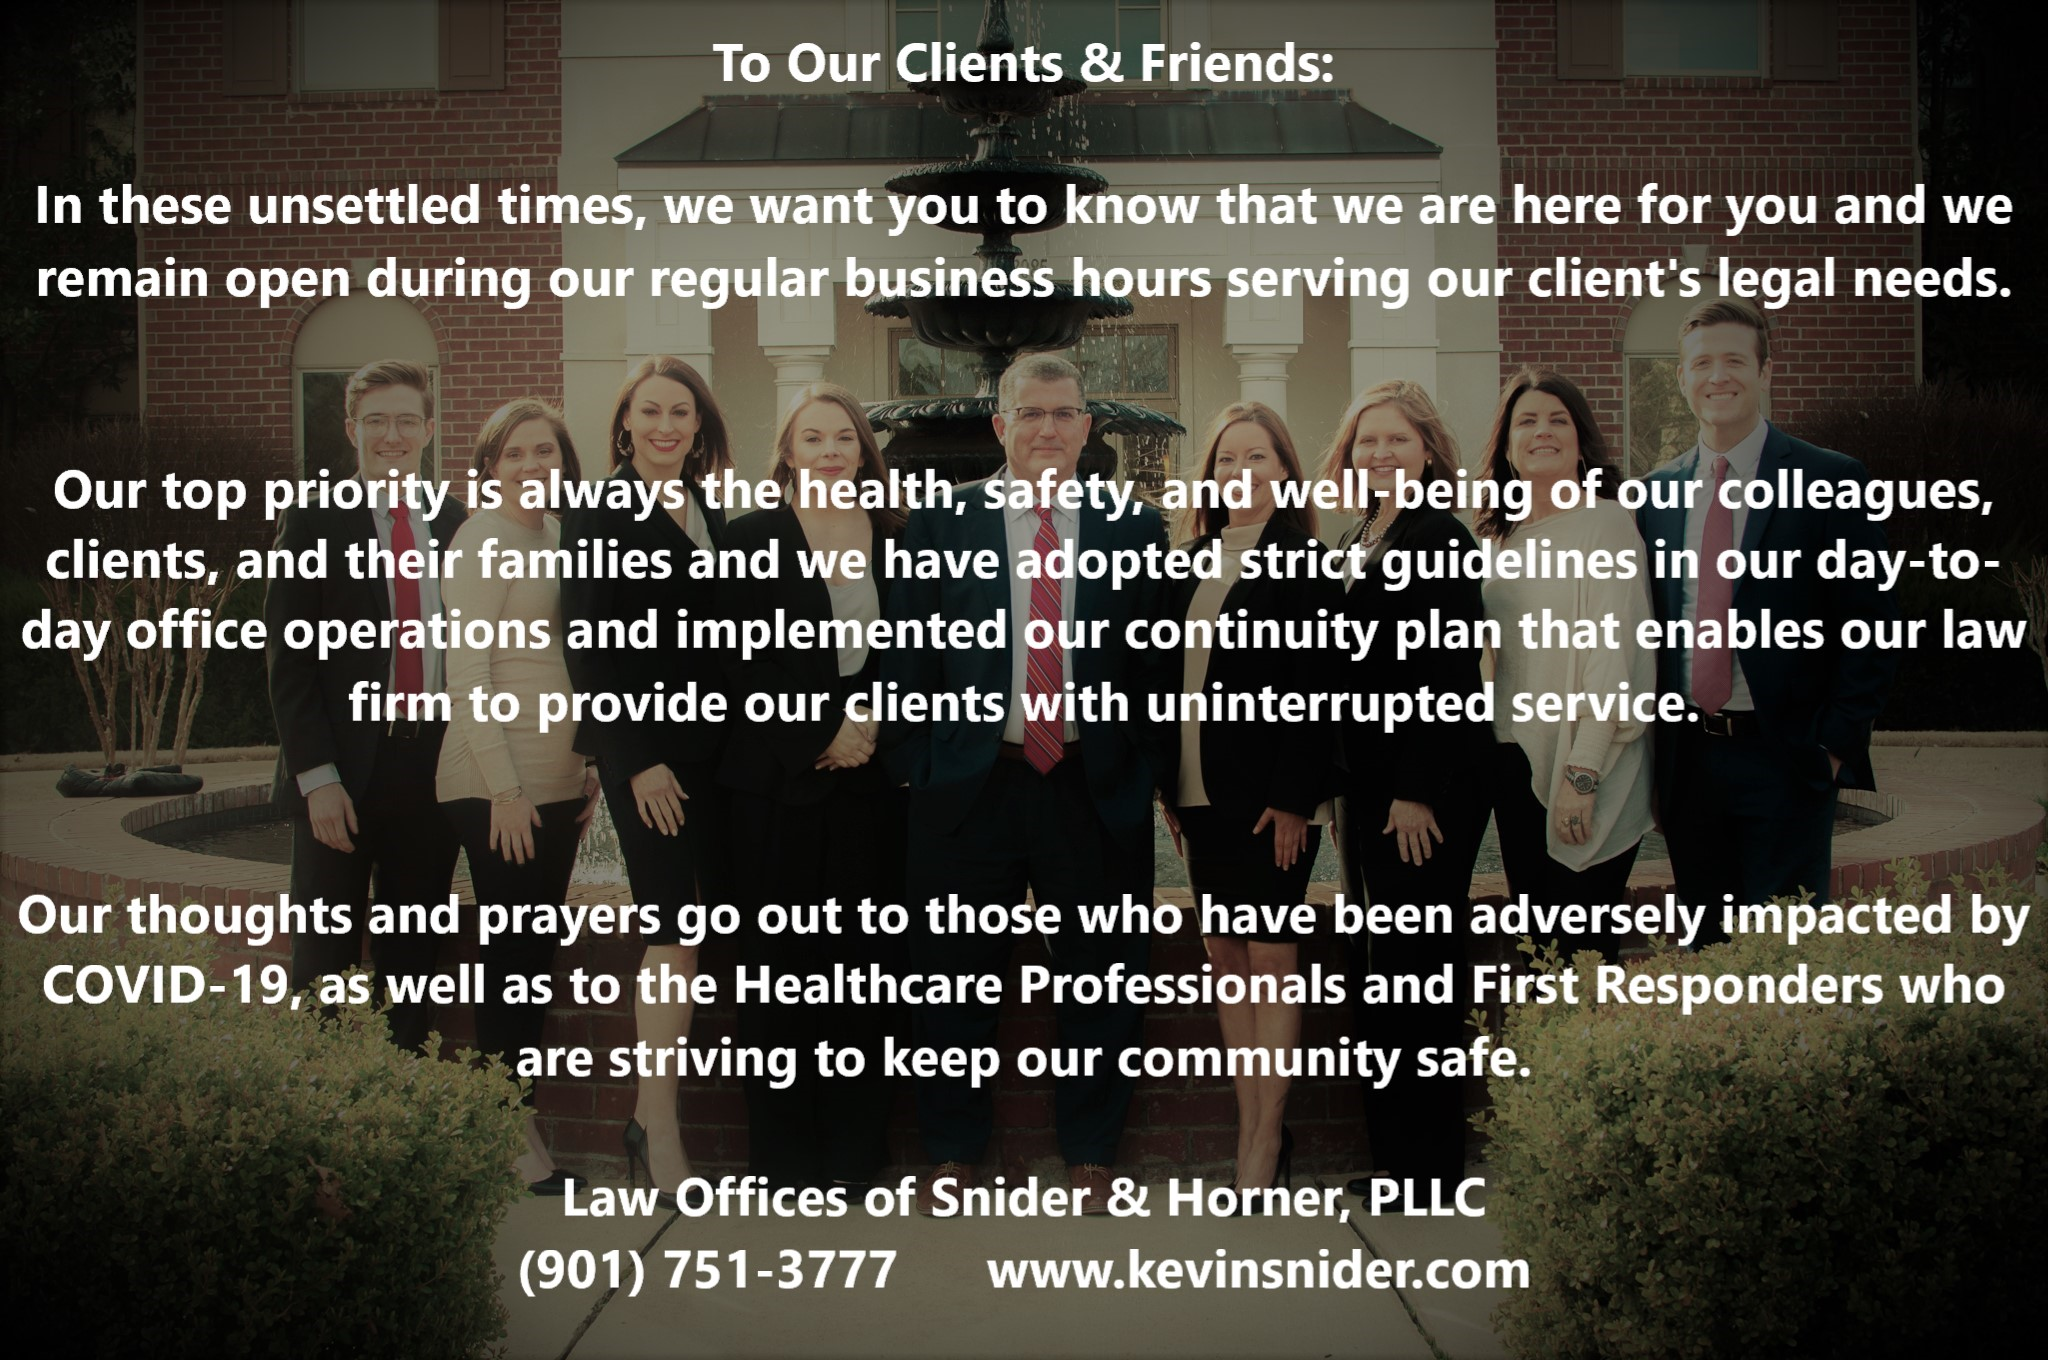 Message to Our Client and Friends